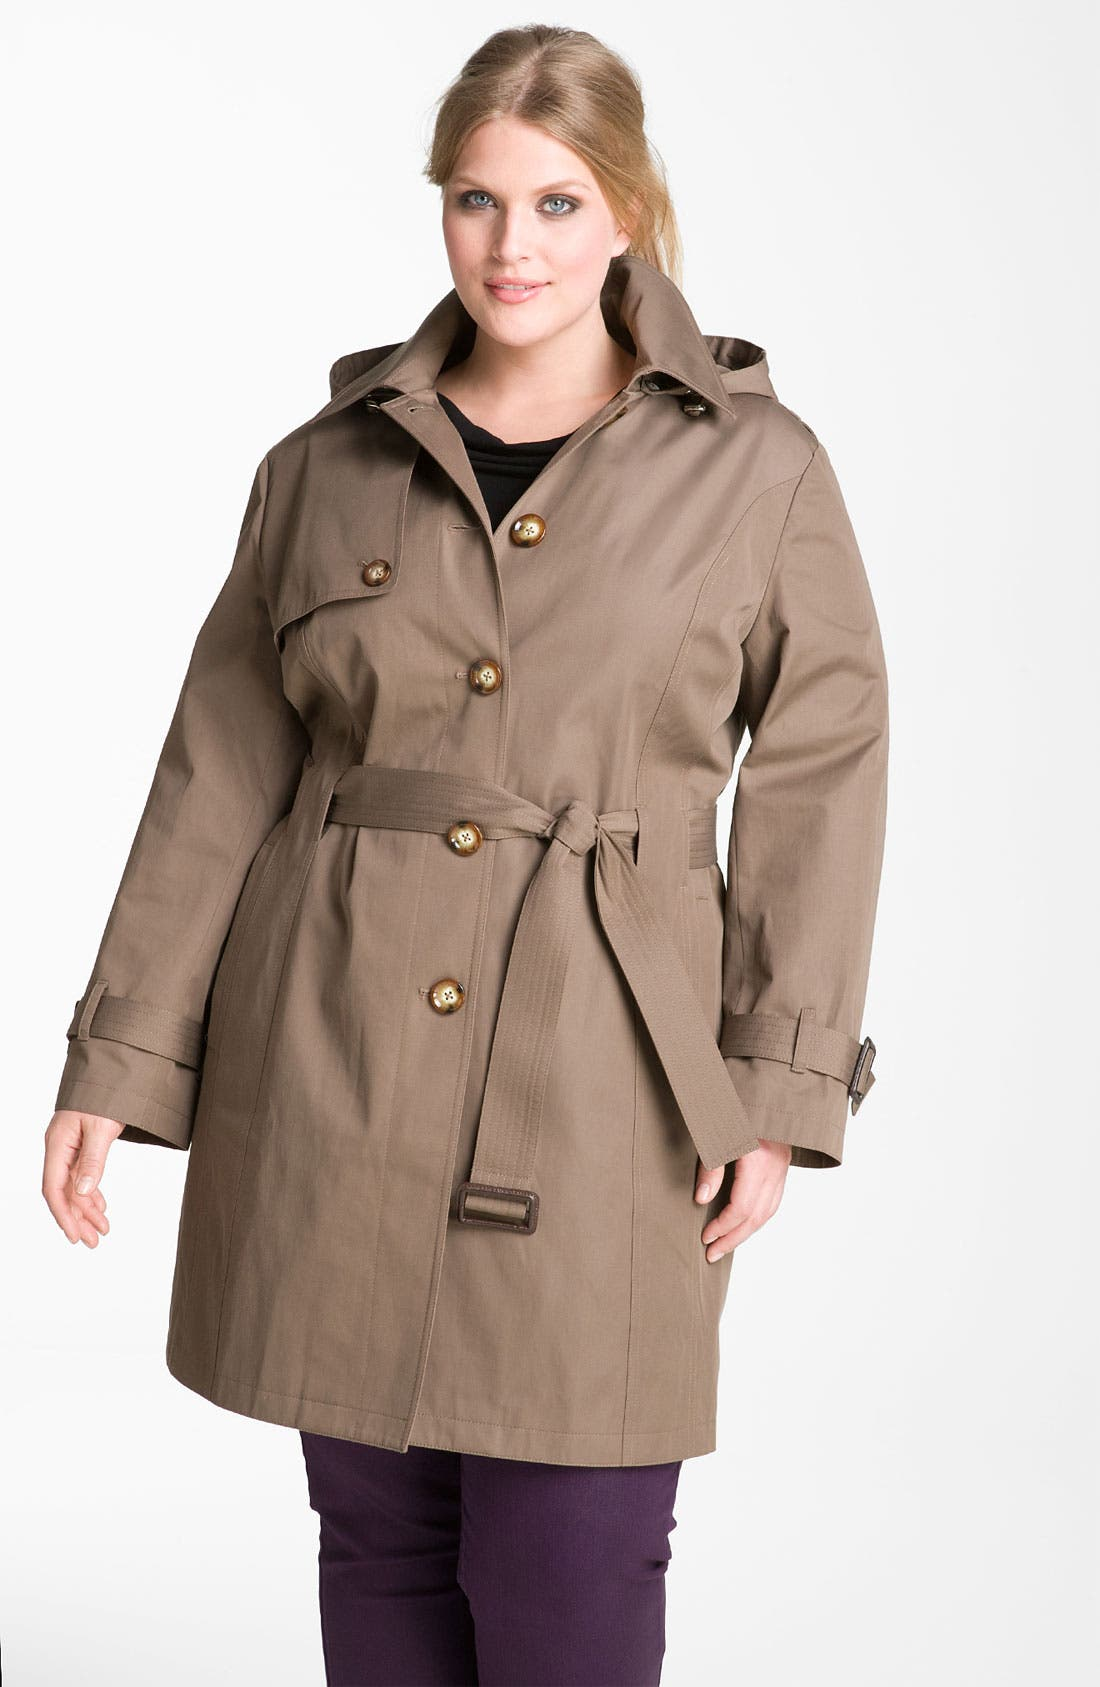 Alternate Image 1 Selected - MICHAEL Michael Kors Trench Coat with Detachable Liner (Plus)